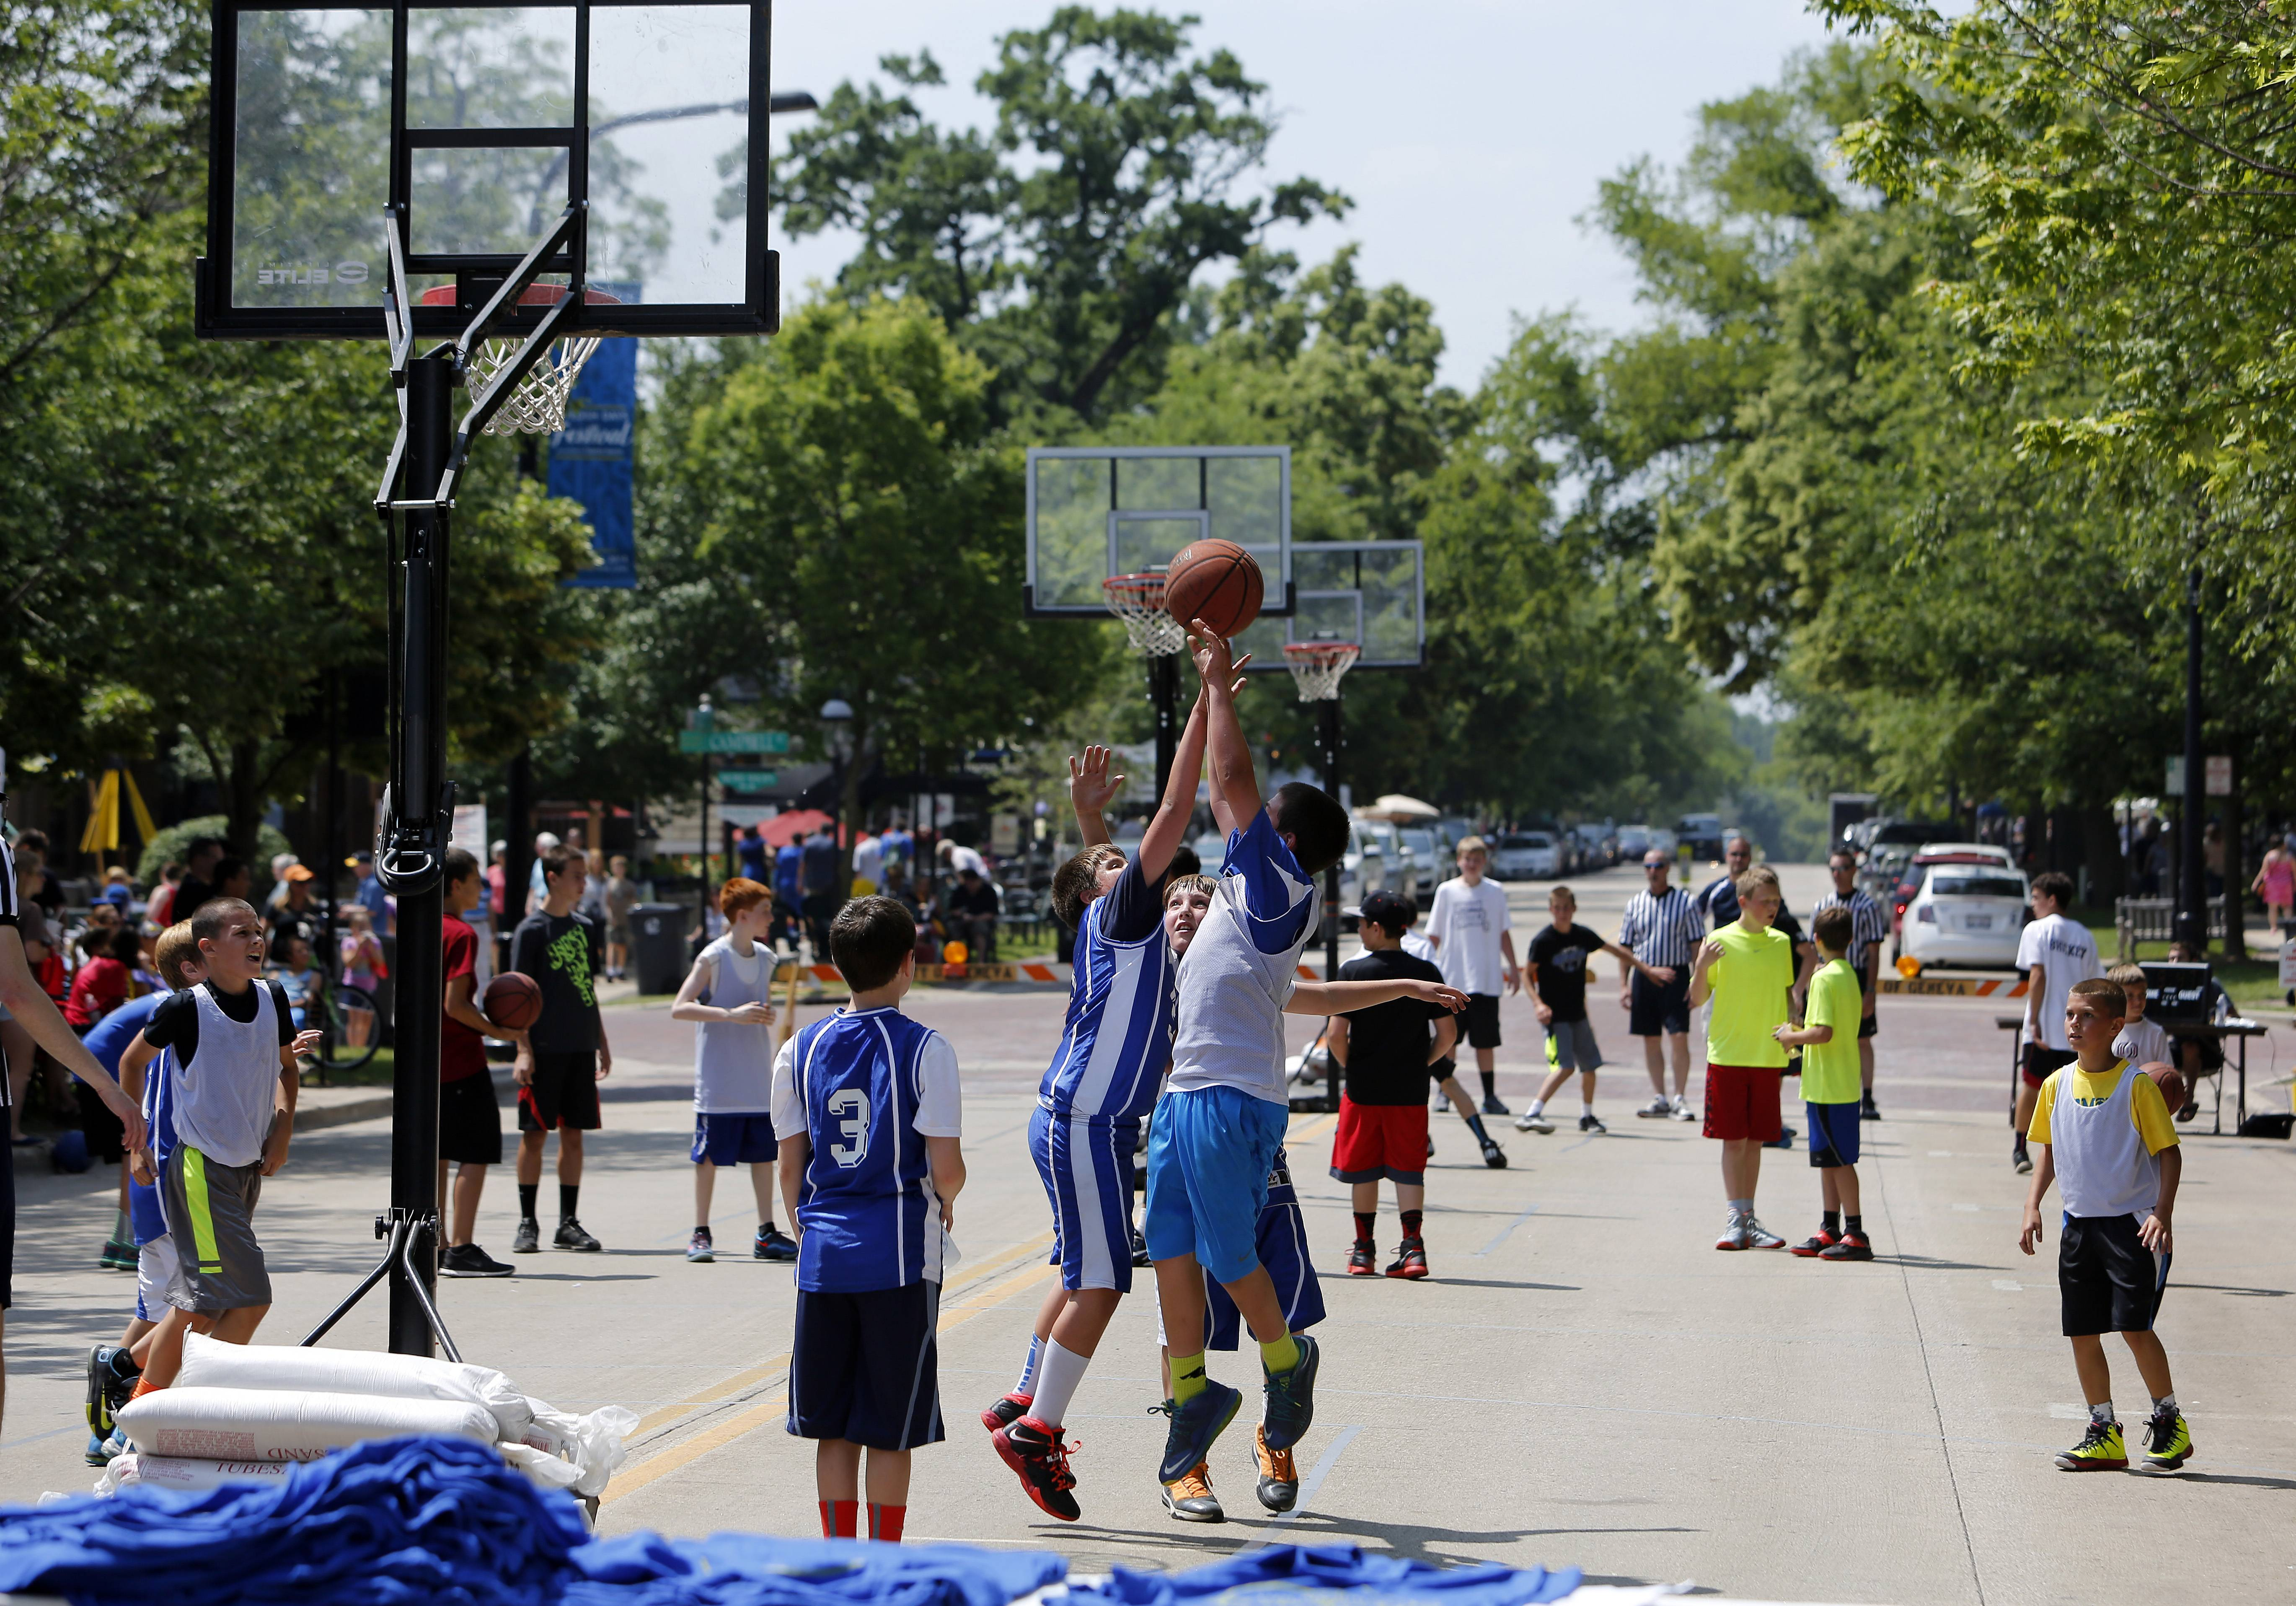 Joey Pupillo, 11, of Addison tries to block a shot by Mason Mascari, 11, of Geneva in the 3 on 3 basketball tournament on Third Street during the 65th Geneva Swedish Days Saturday in downtown Geneva.